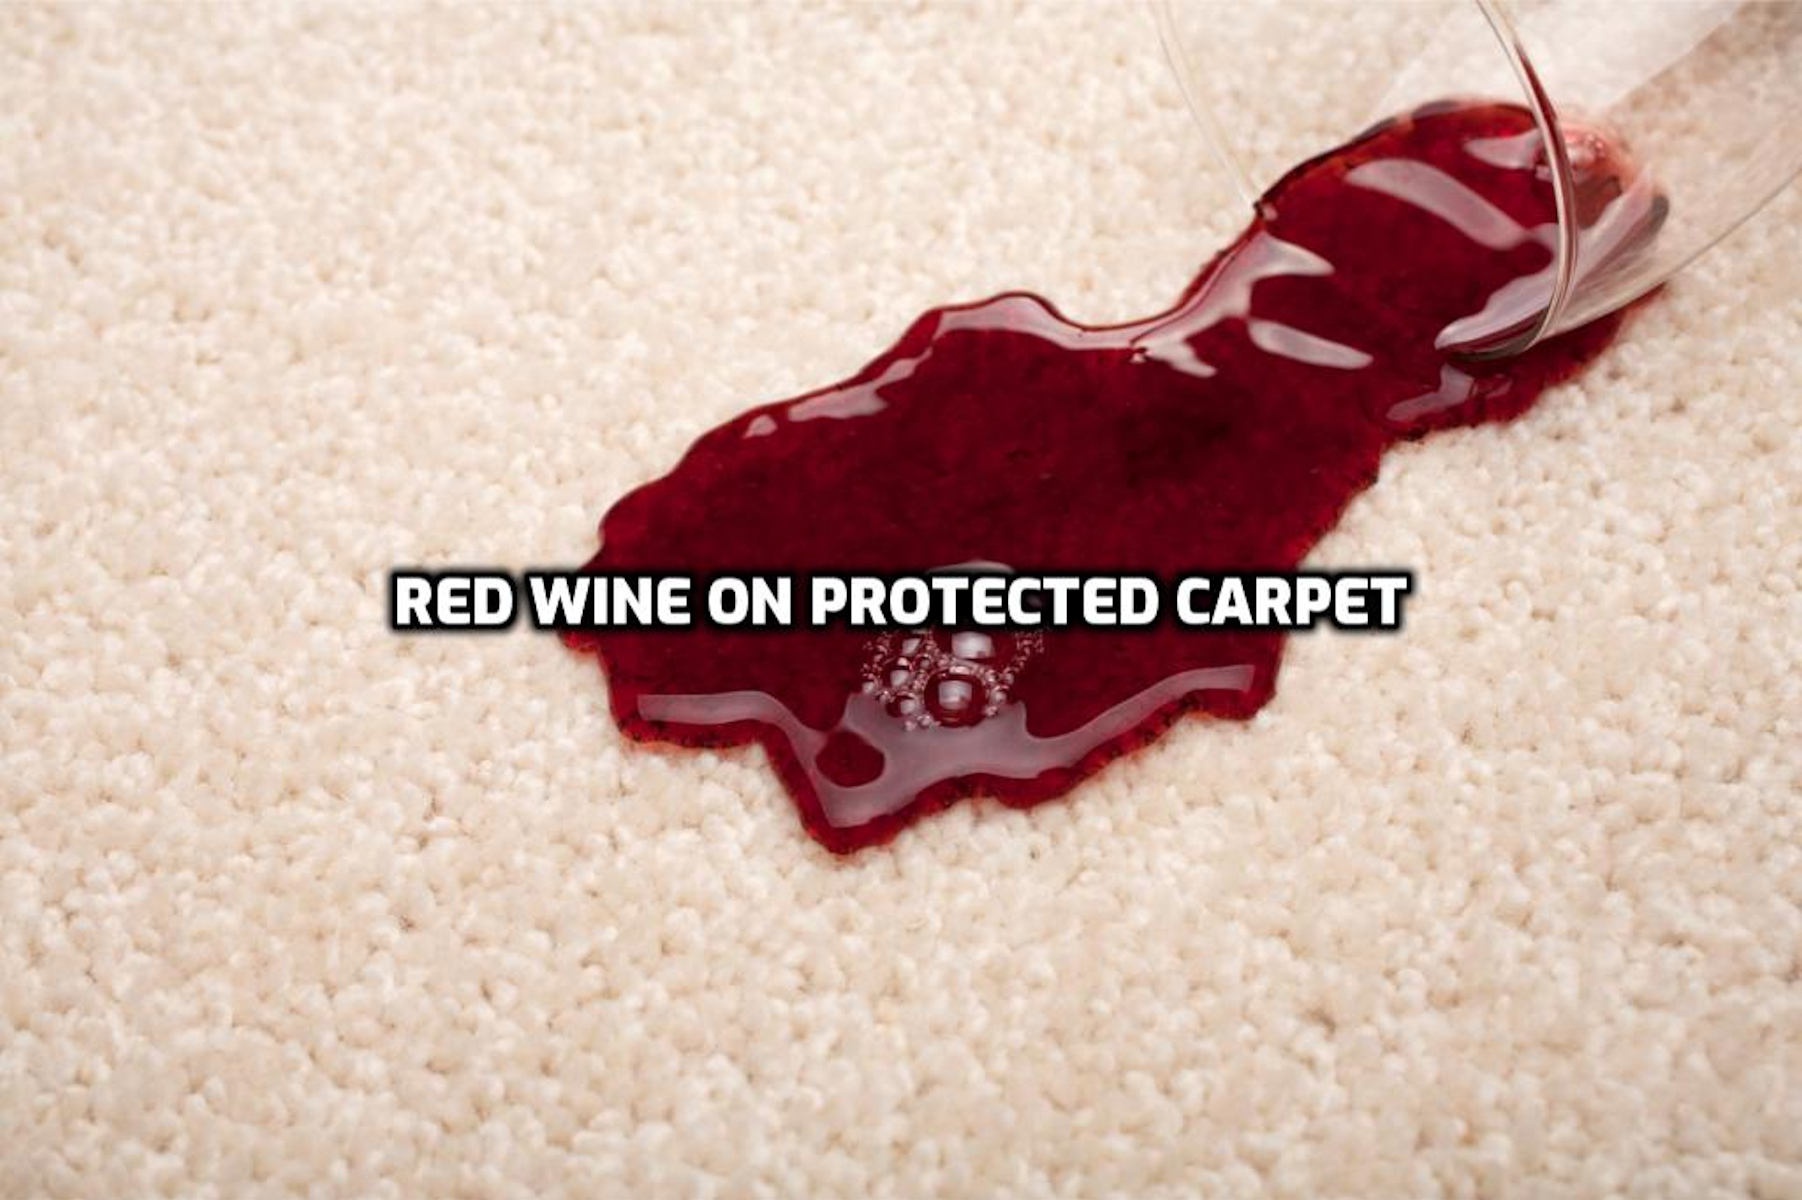 Carpet protector creates a barrier so the red wine sits on the surface of the carpet for easy removal